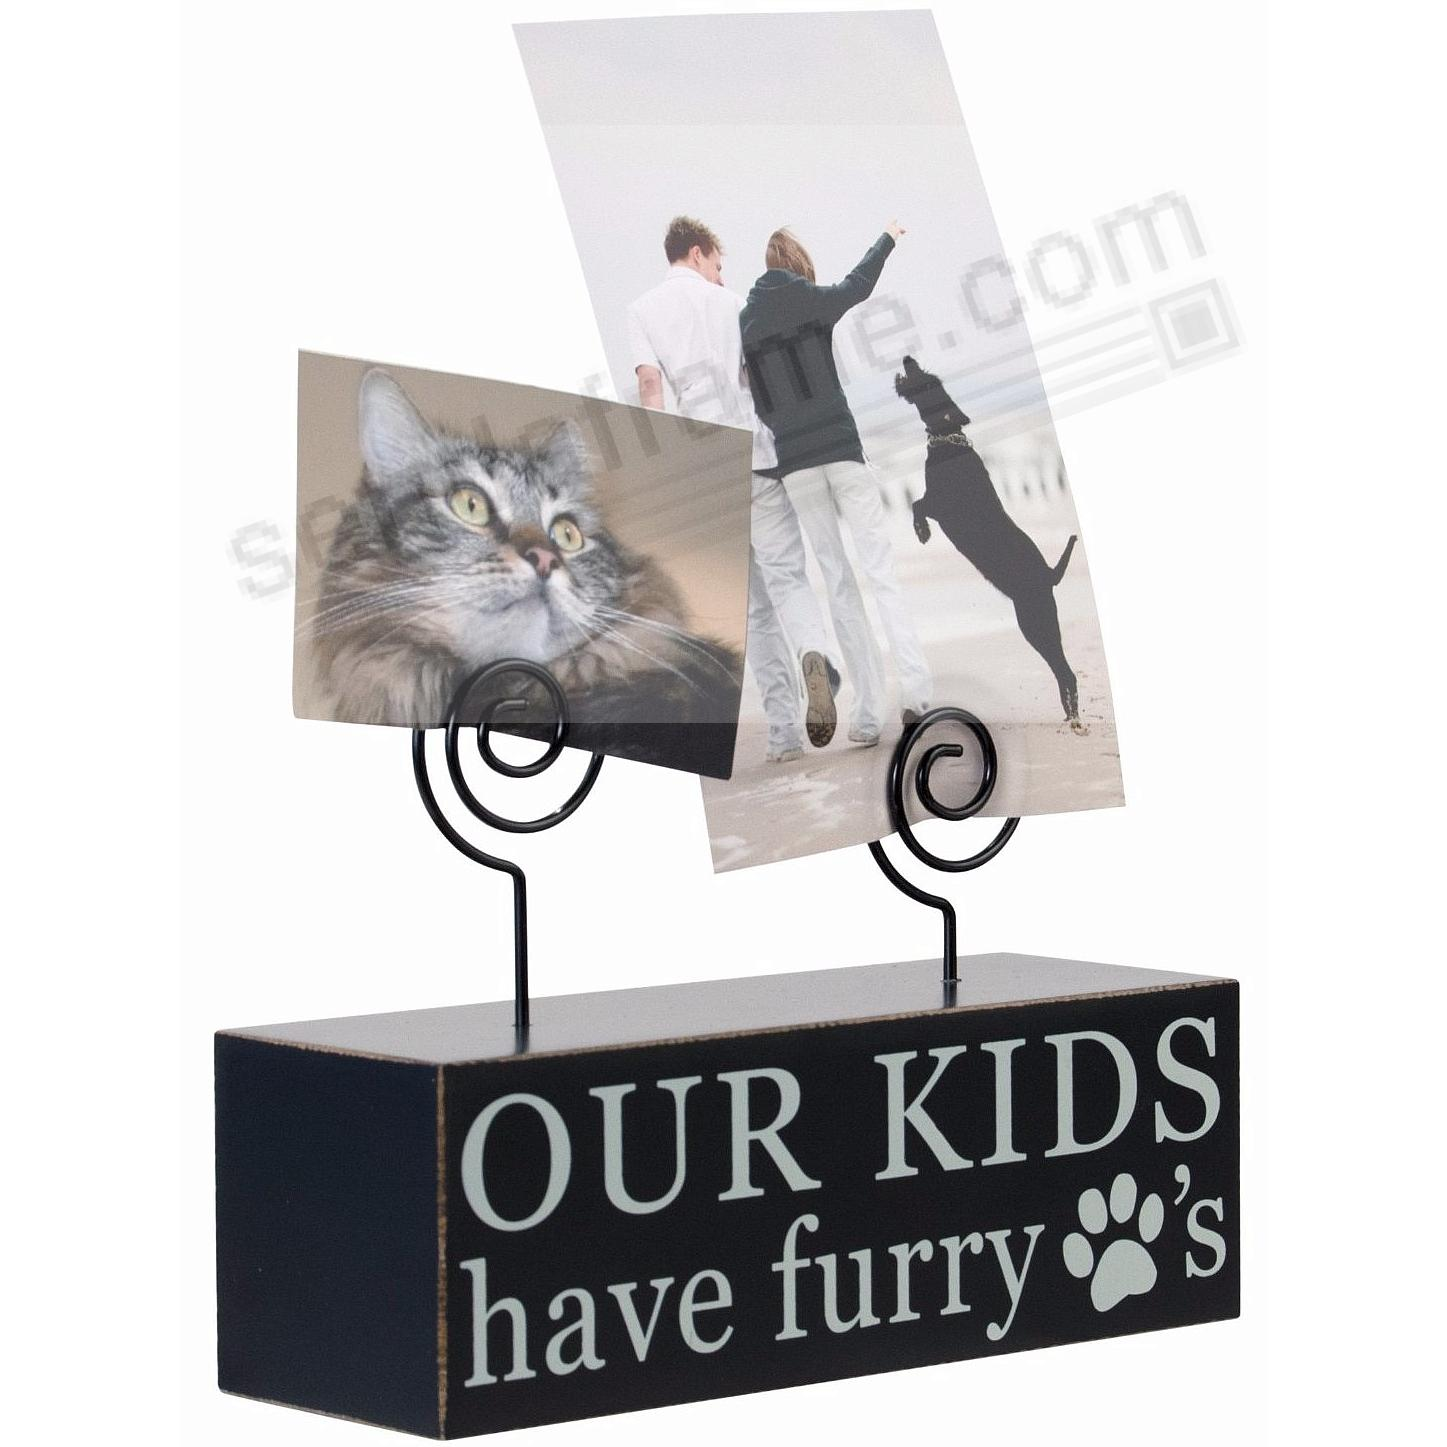 FURRY PAWS Expressions Clip frame by Malden USA® - Picture Frames ...